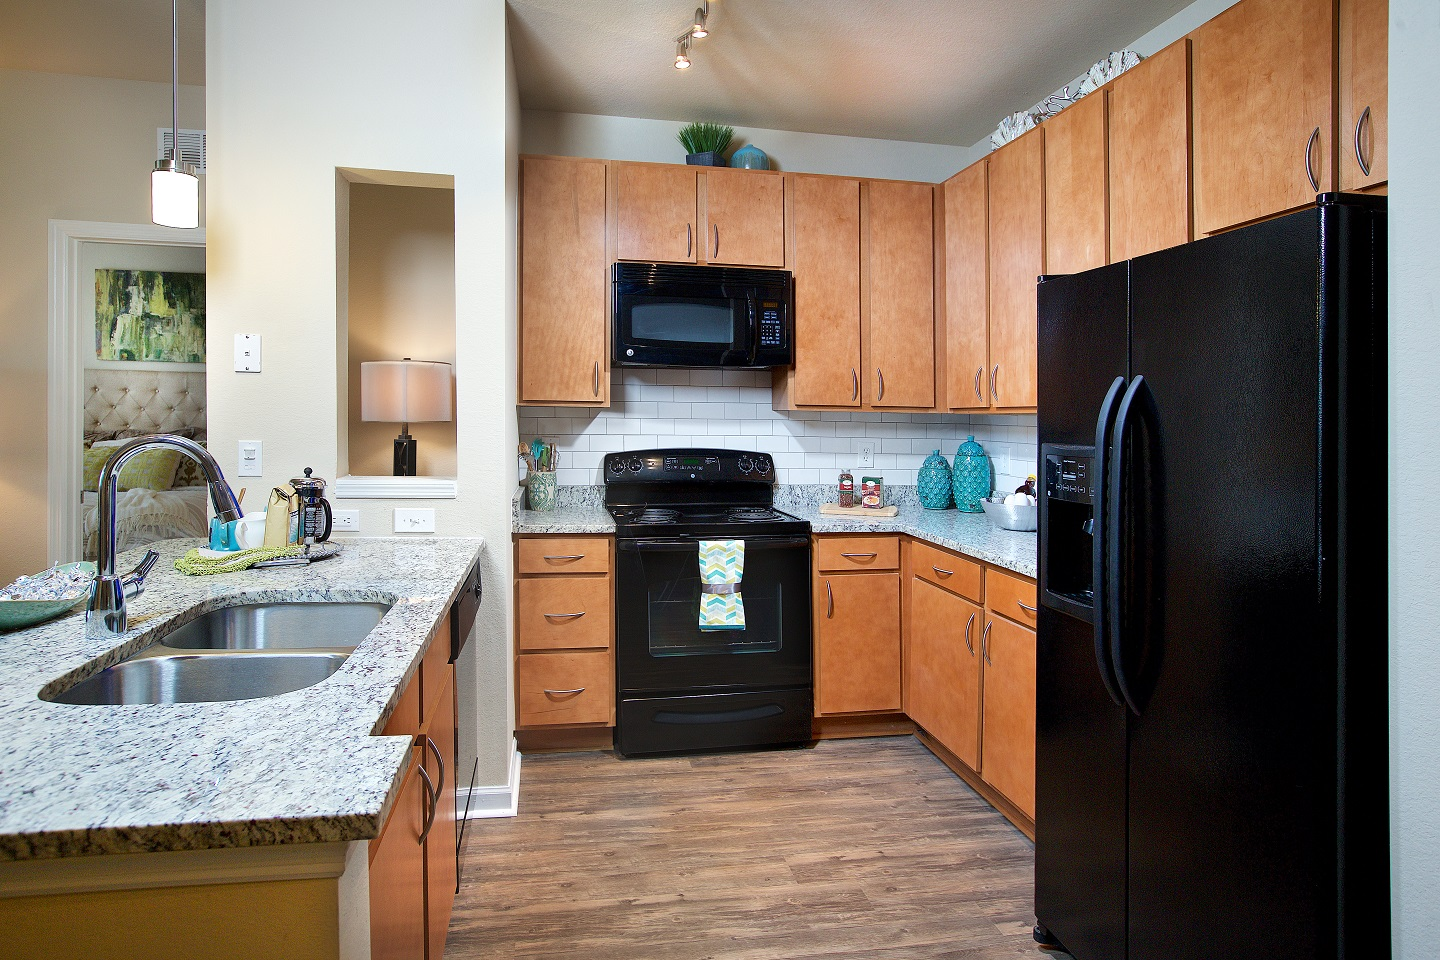 Kitchen cabinets and appliances at Century Deerwood Park